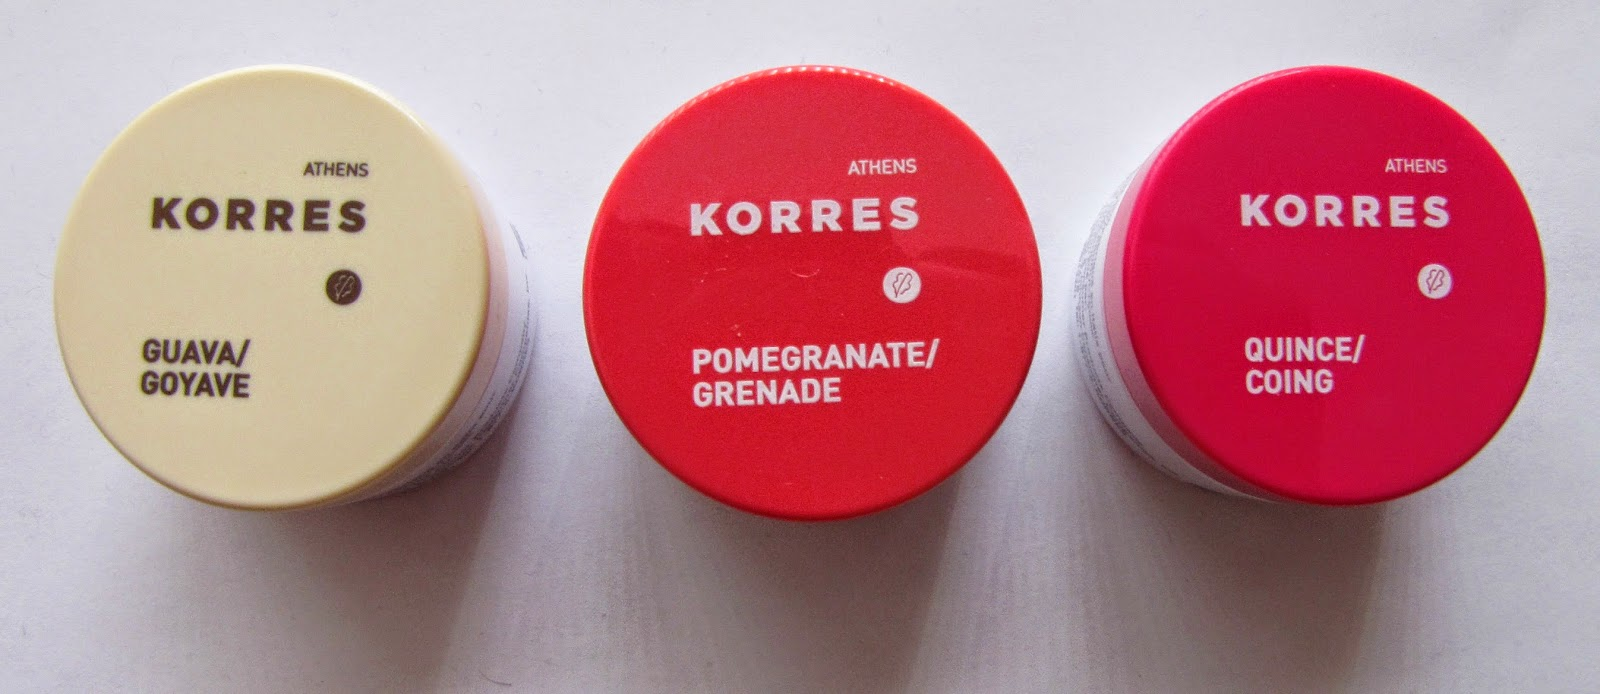 Korres Lip Butter in Quince Review and Swatches | Tprofet ...